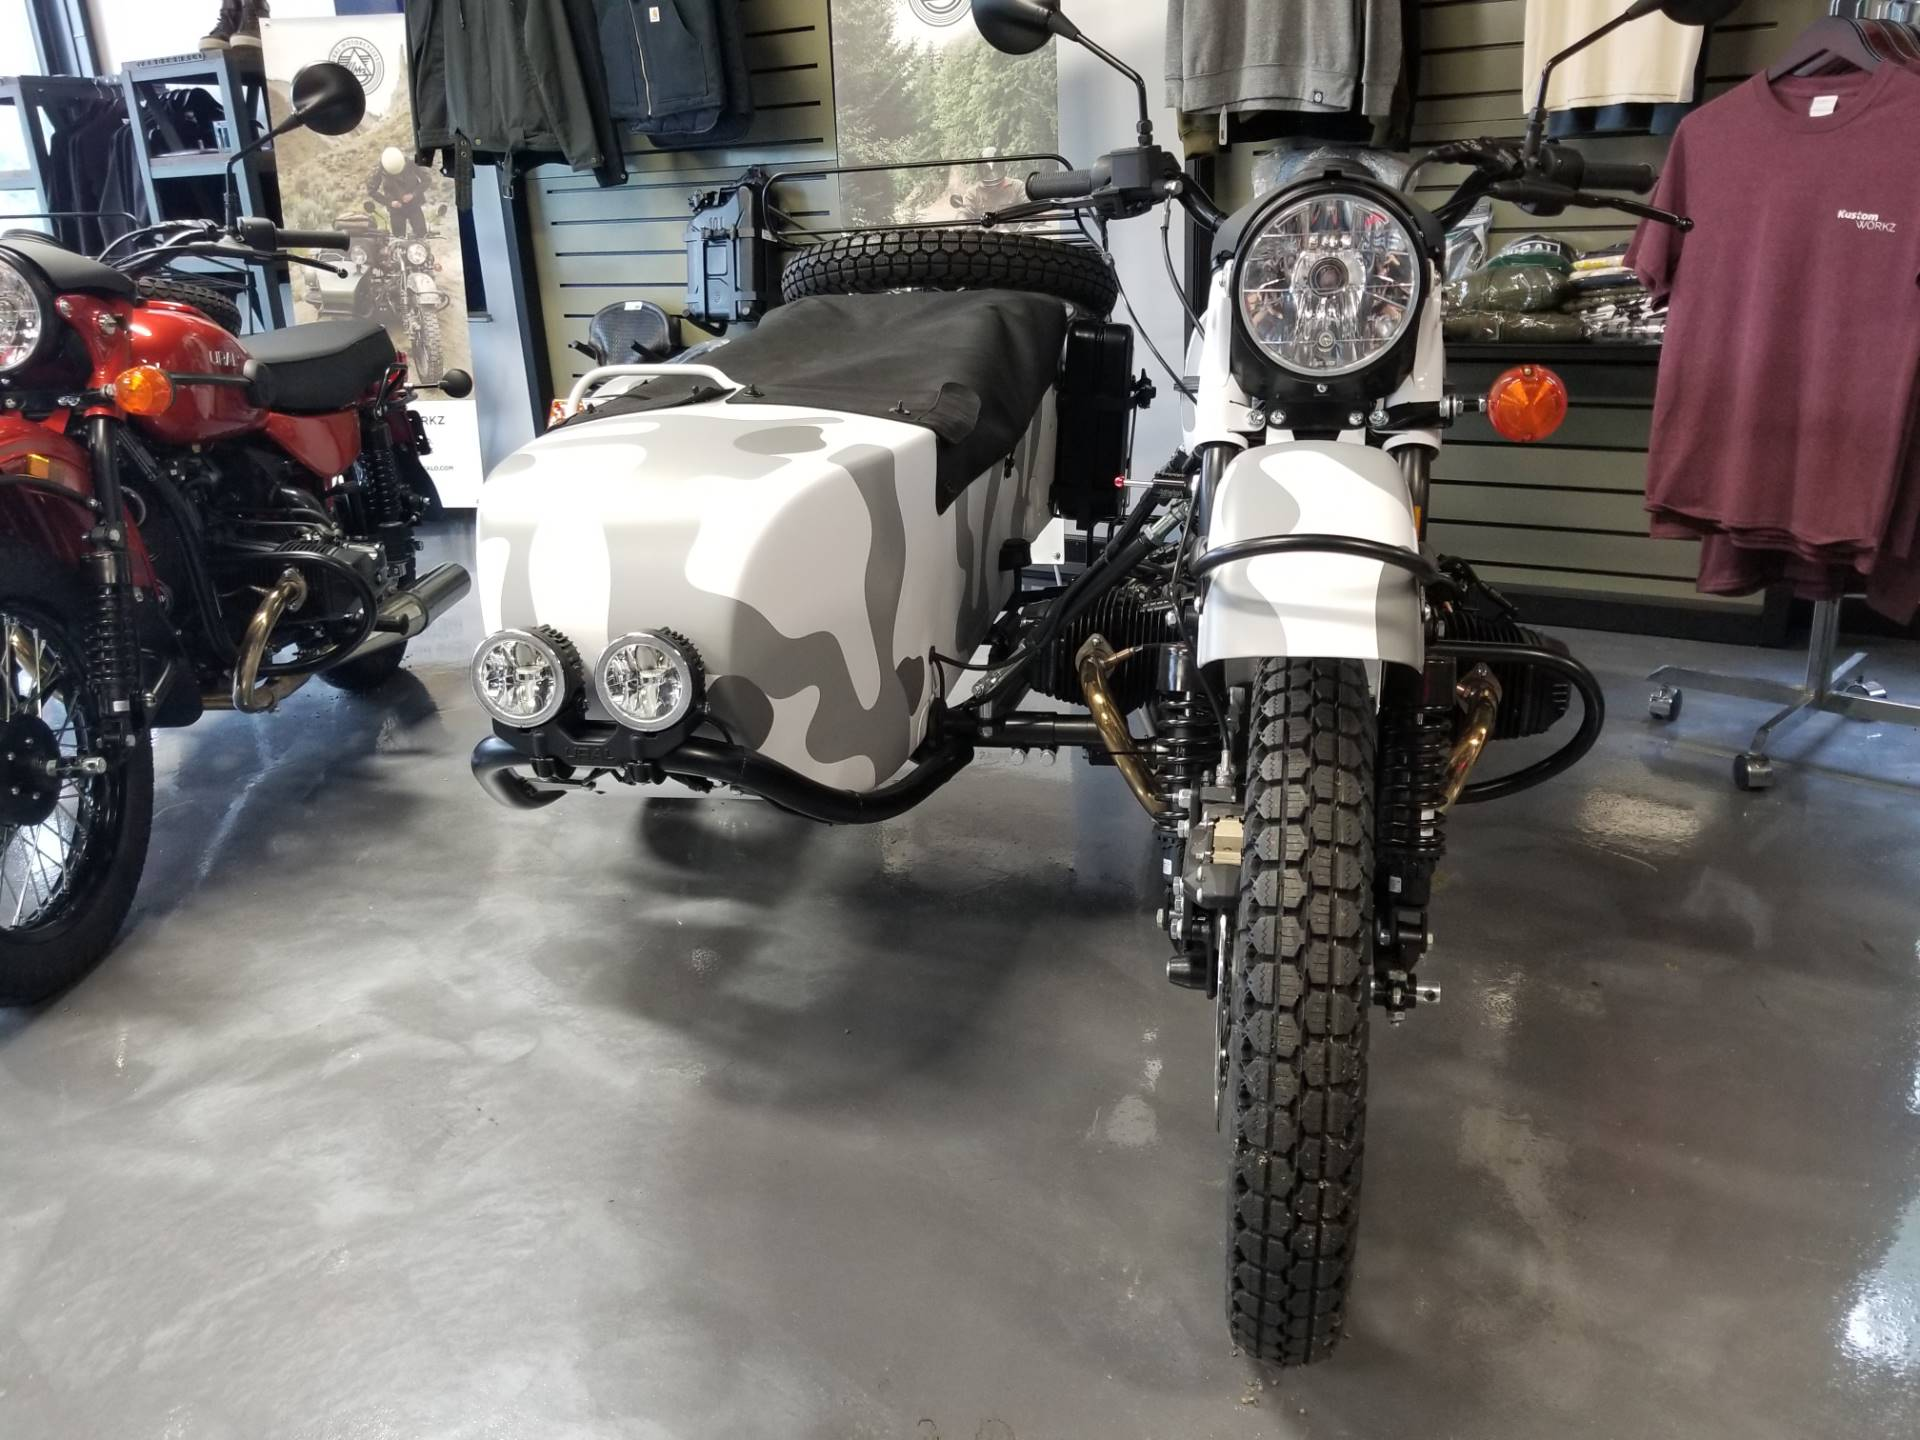 2019 Ural Motorcycles Gear Up in Depew, New York - Photo 5